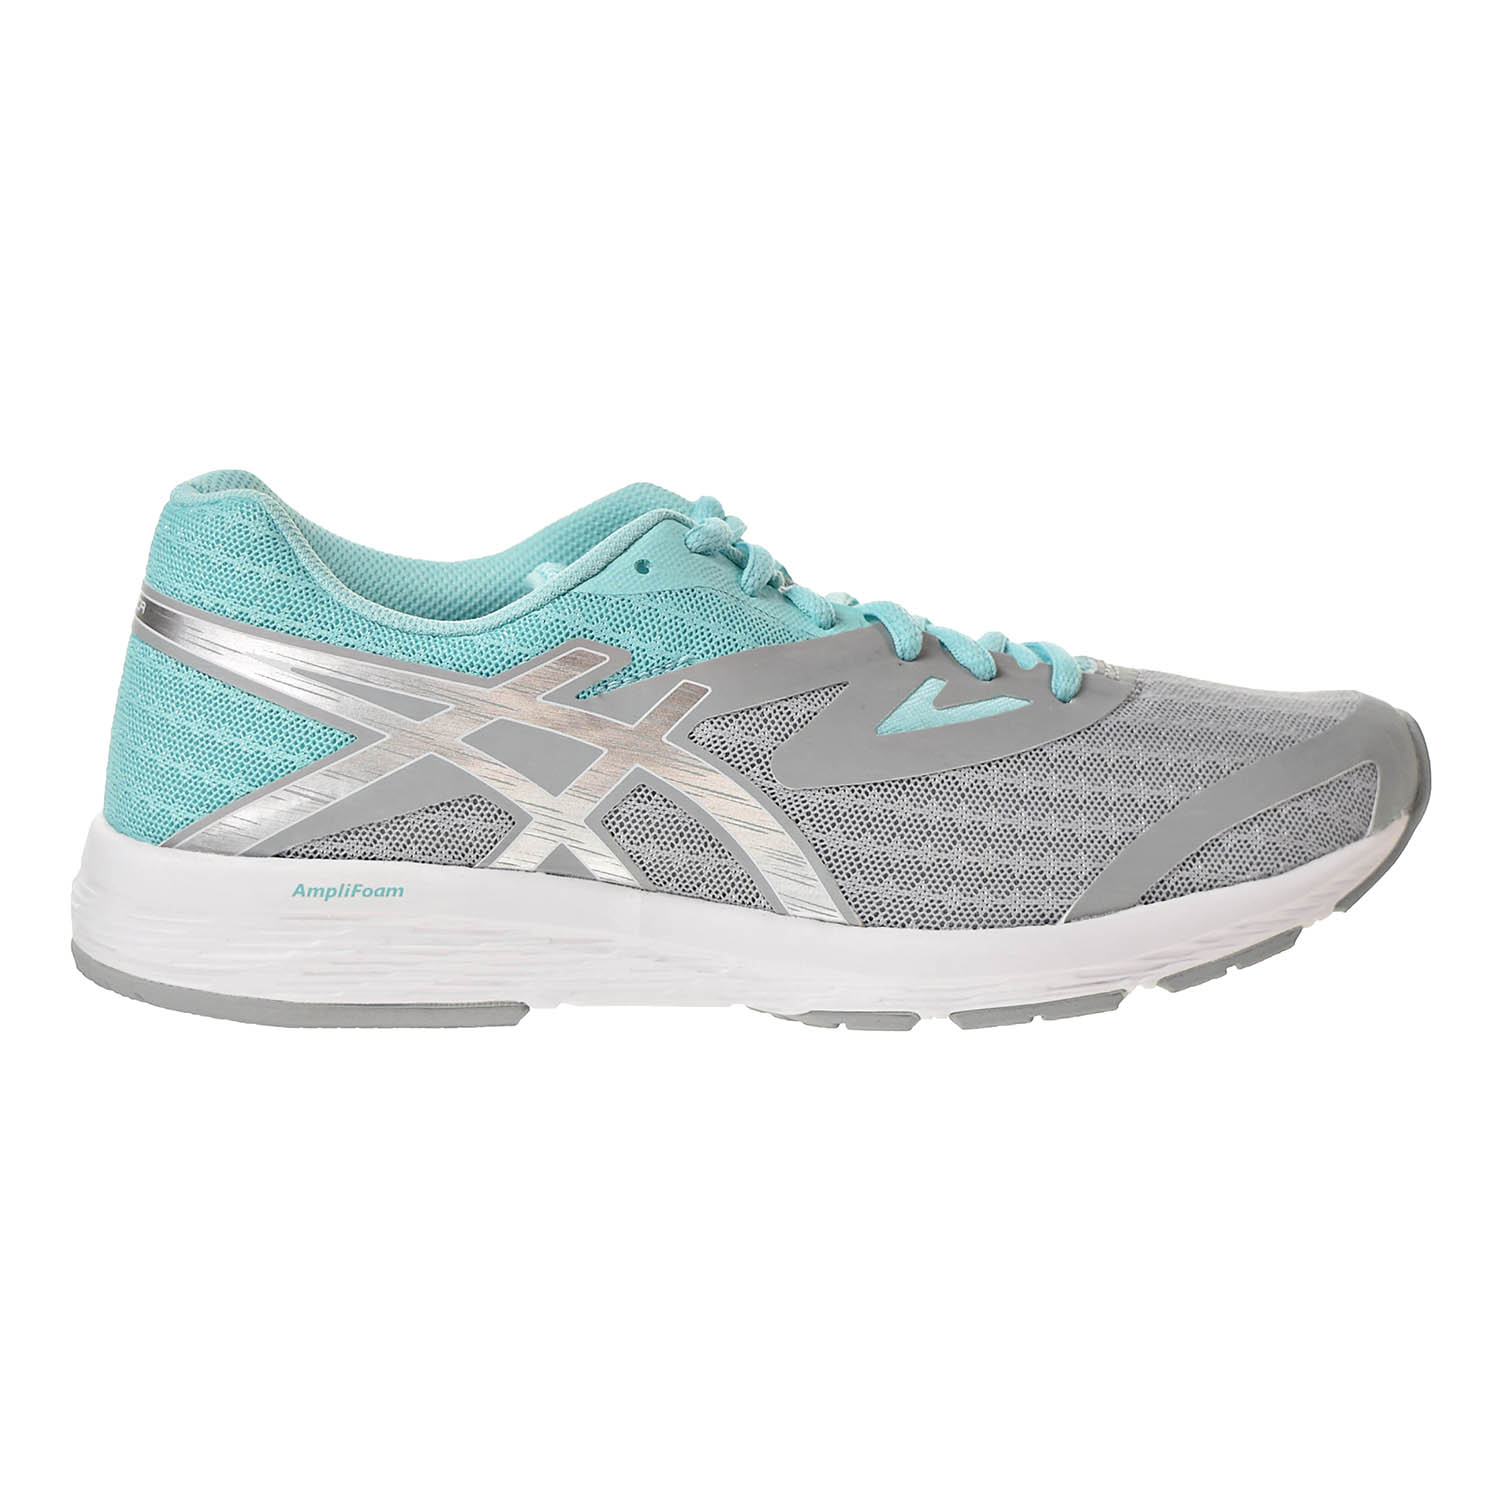 Asics Amplica Women's Runing Shoes Mid